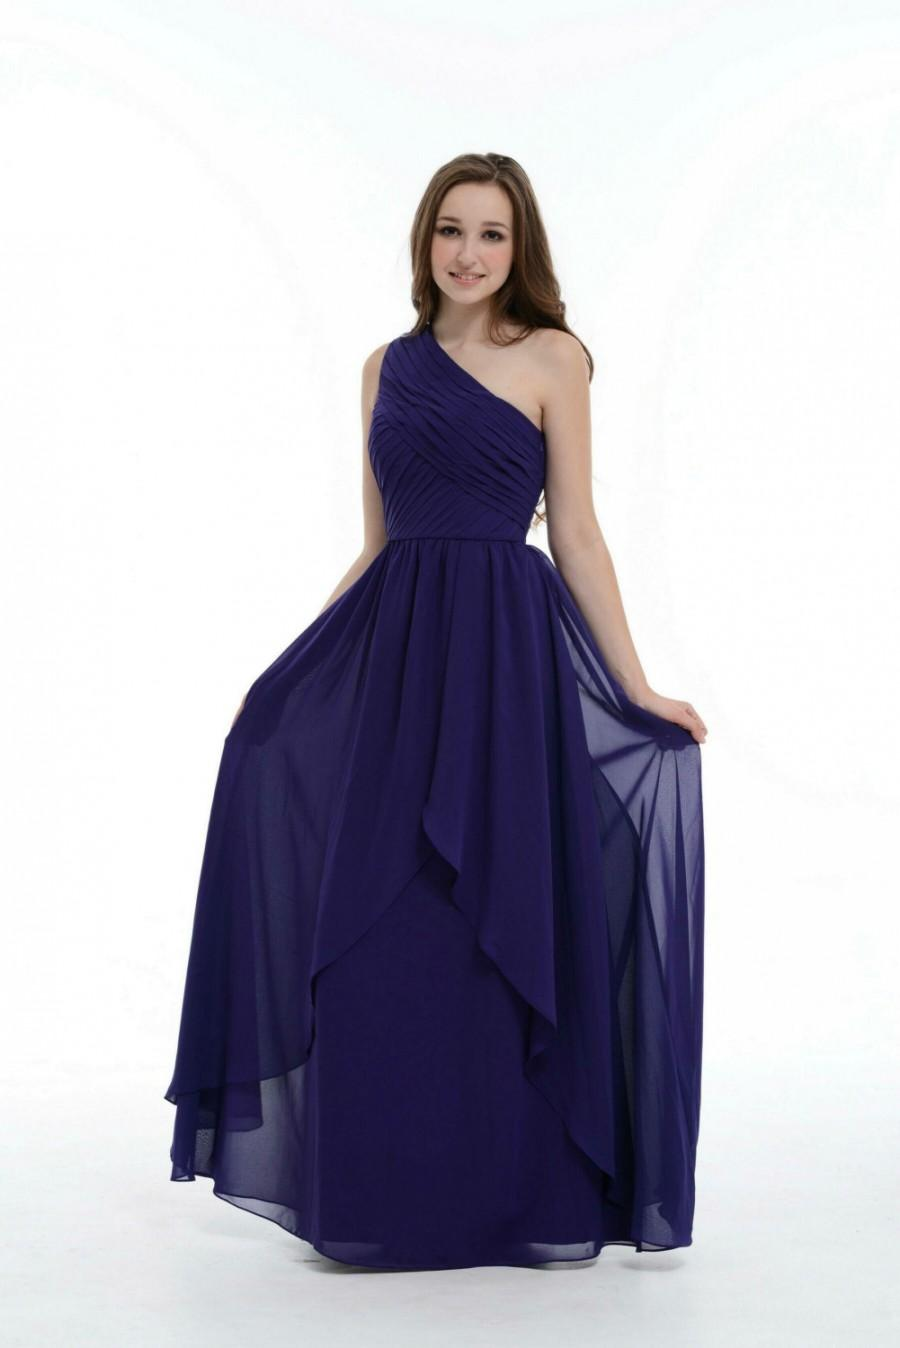 Mariage - Royal Blue Bridesmaid Dress, One Shoulder Floor-Length Chiffon Bridesmaid Dress With Ruffle